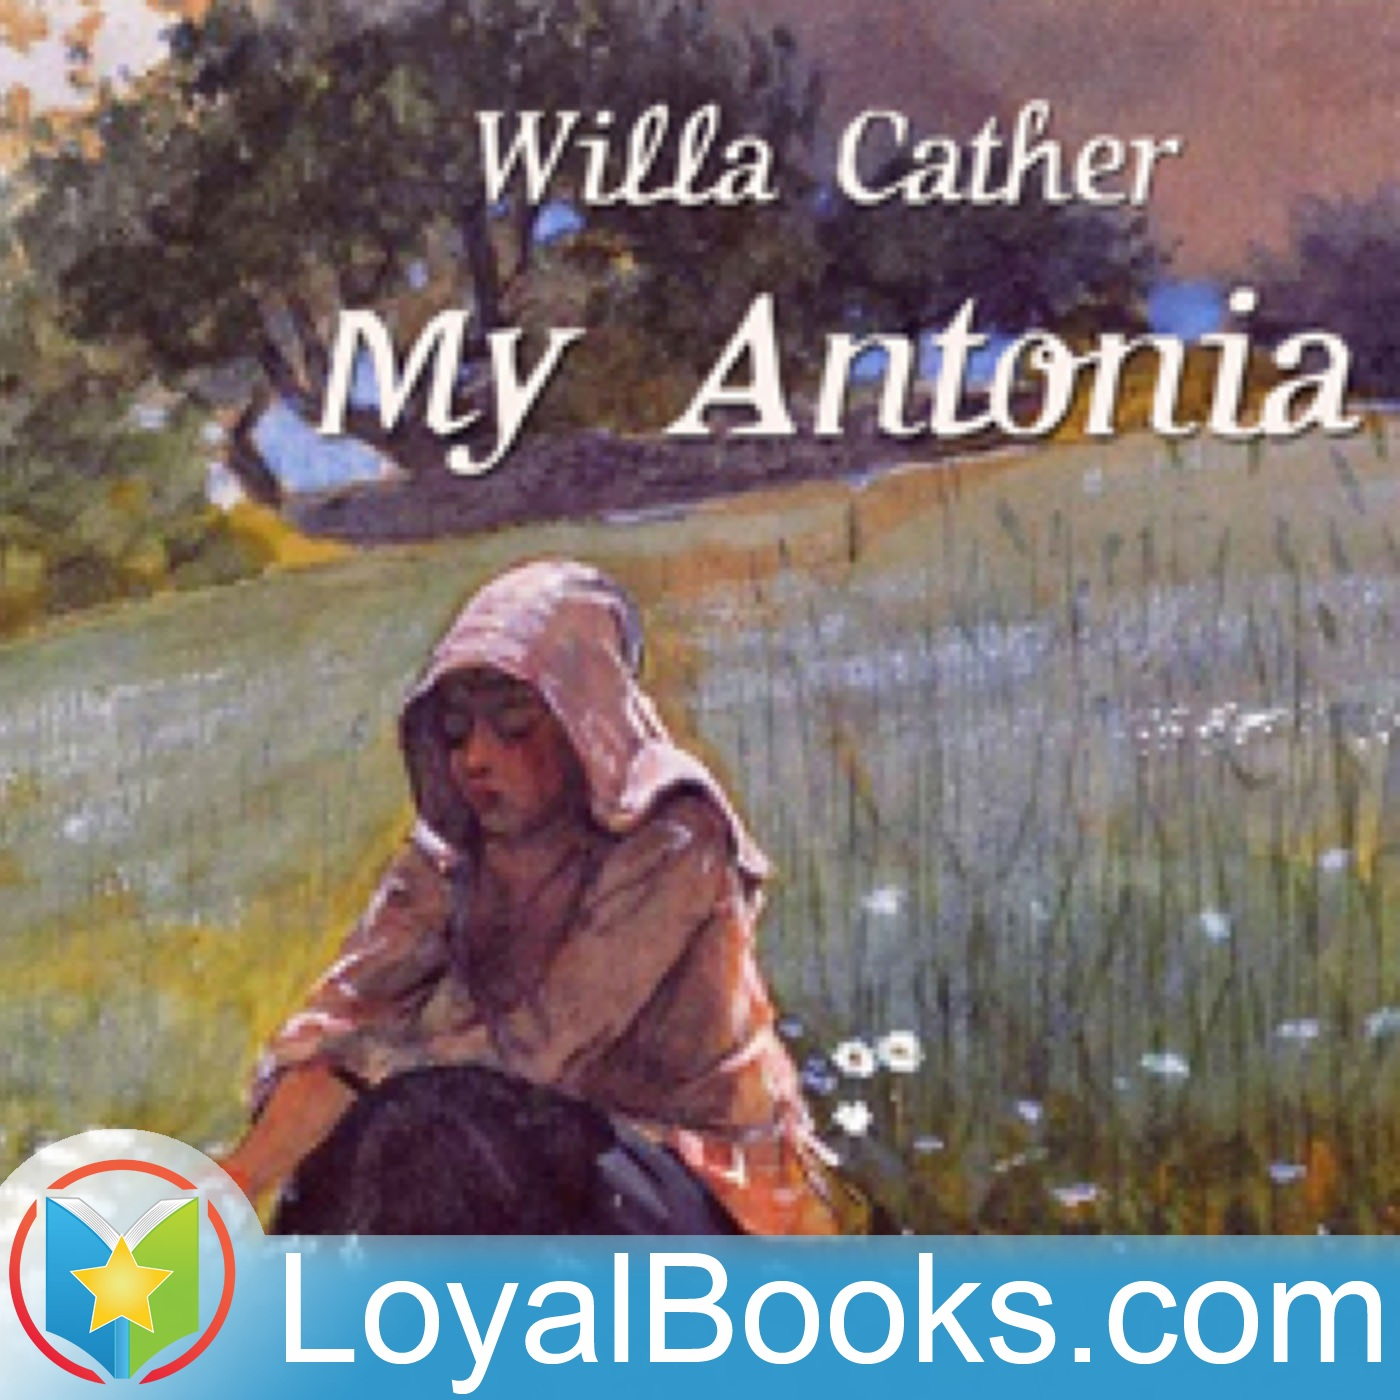 <![CDATA[My Antonia by Willa Cather]]>